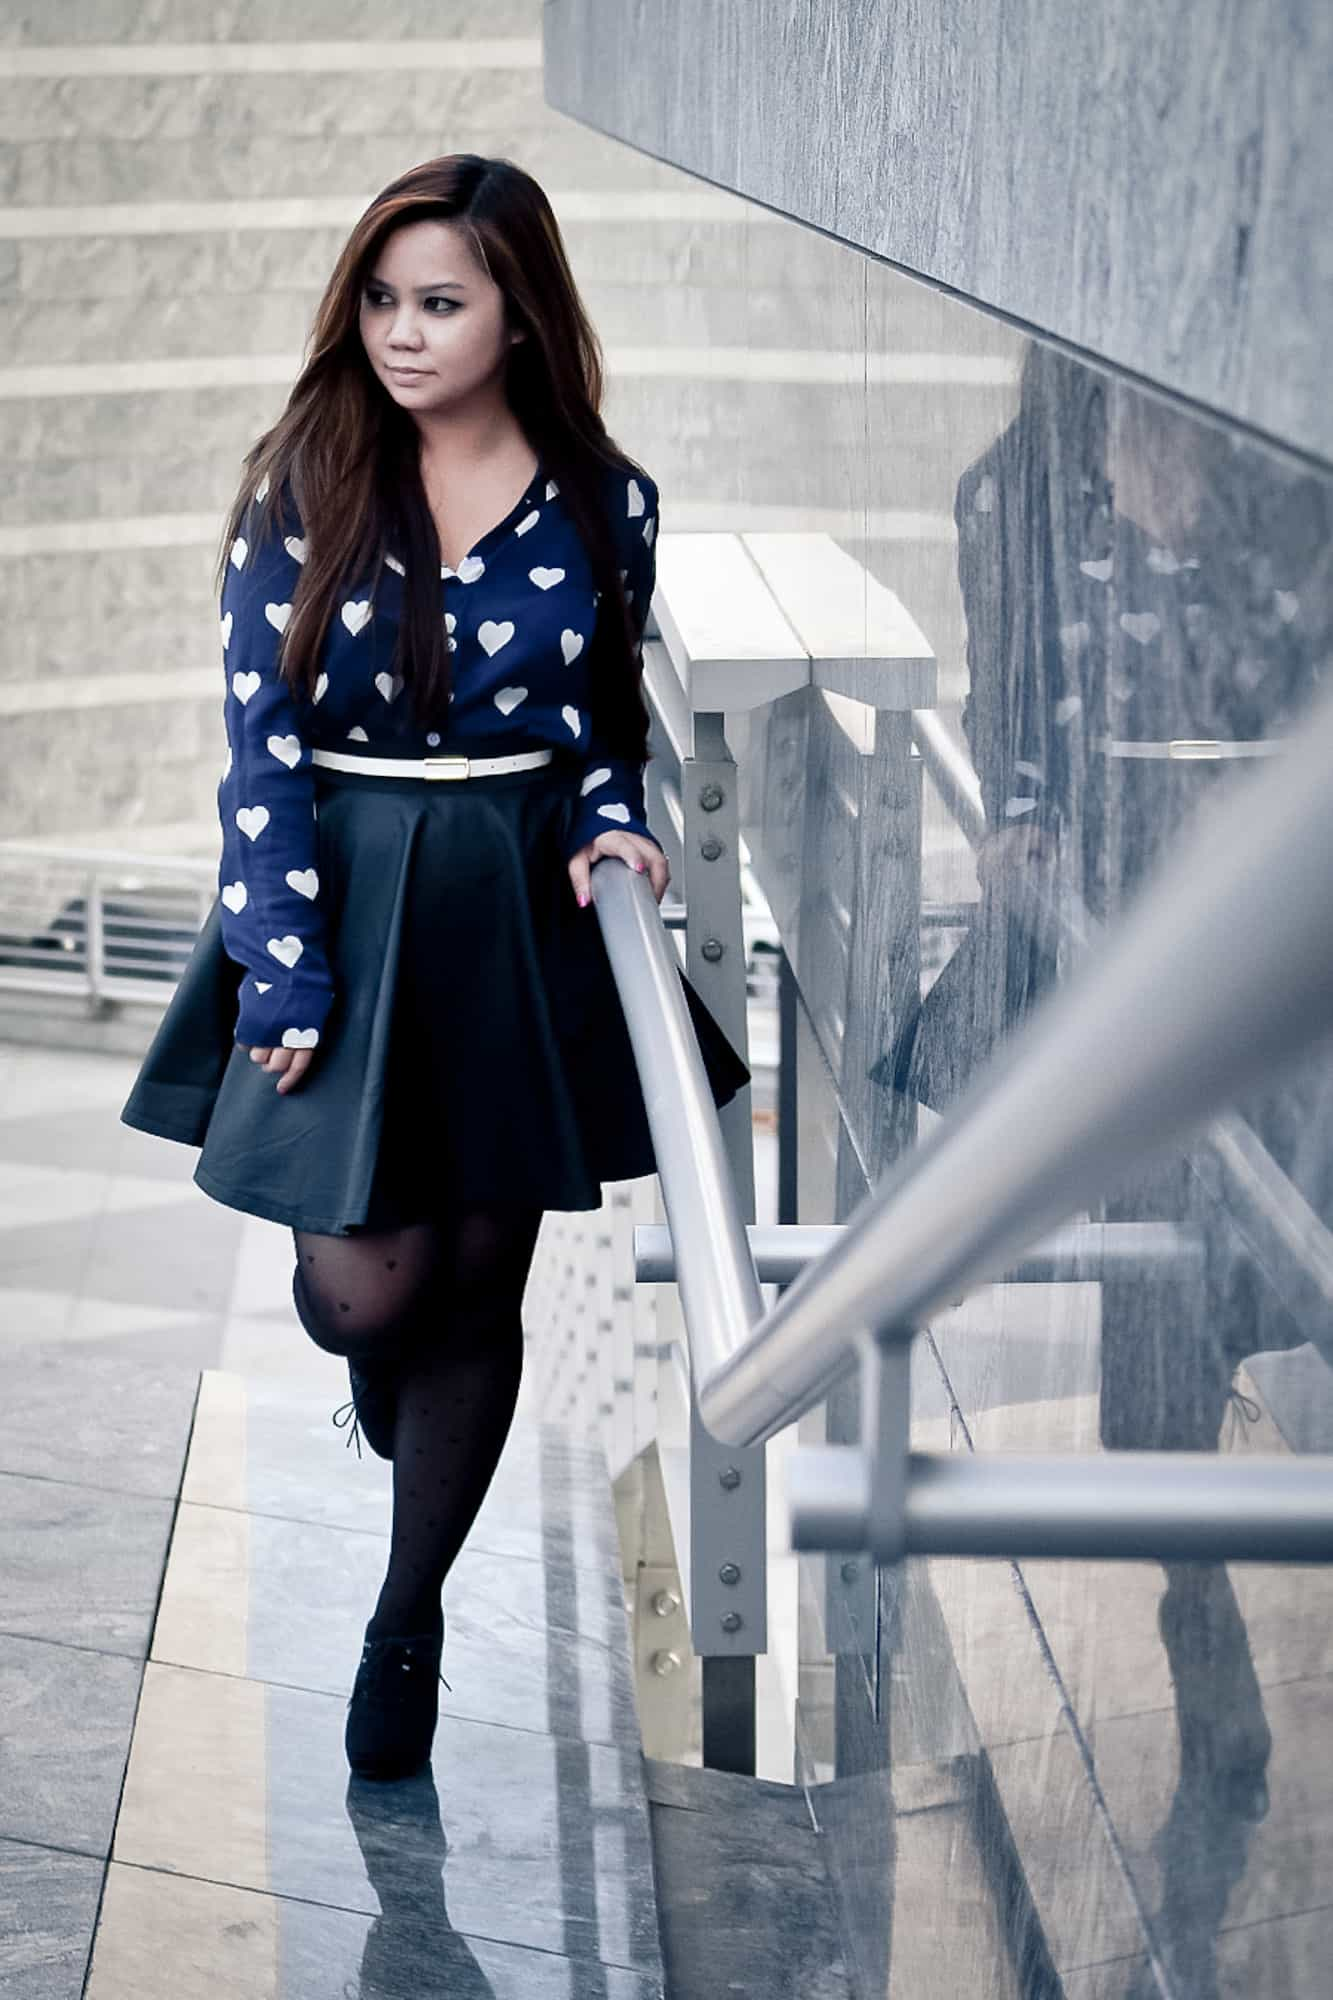 wearwhatwhen-navy-hearts-02